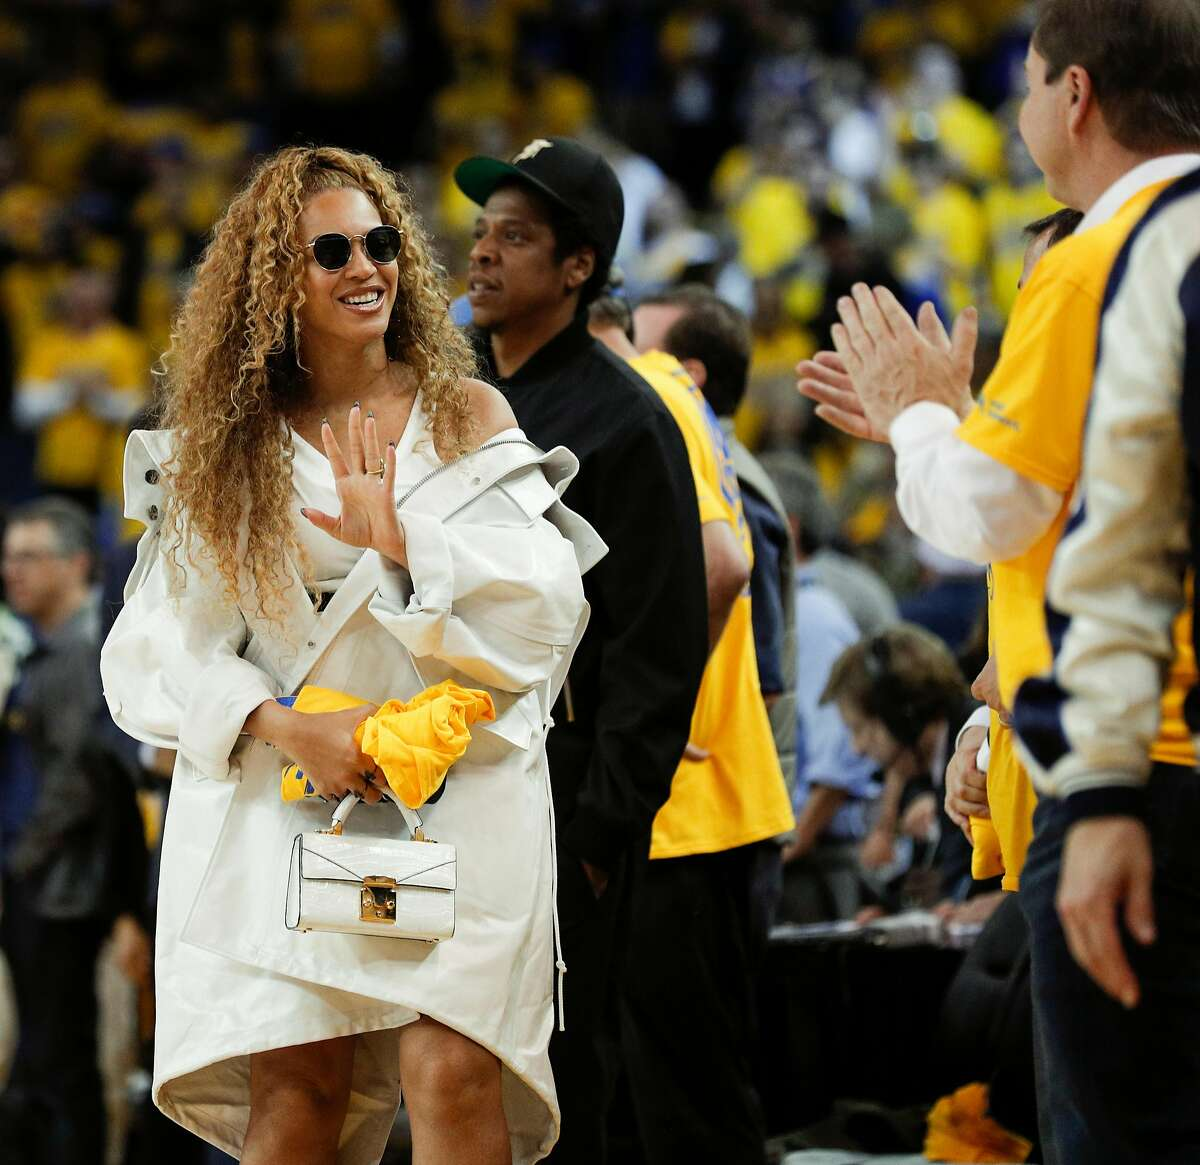 Beyonce waves good-bye to Joe Lacob in the fourth quarter during game 1 of round 2 of the Western Conference Finals between the Golden State Warriors and the New Orleans Pelicans at Oracle Arena on Saturday, April 28, 2018 in Oakland, Calif.